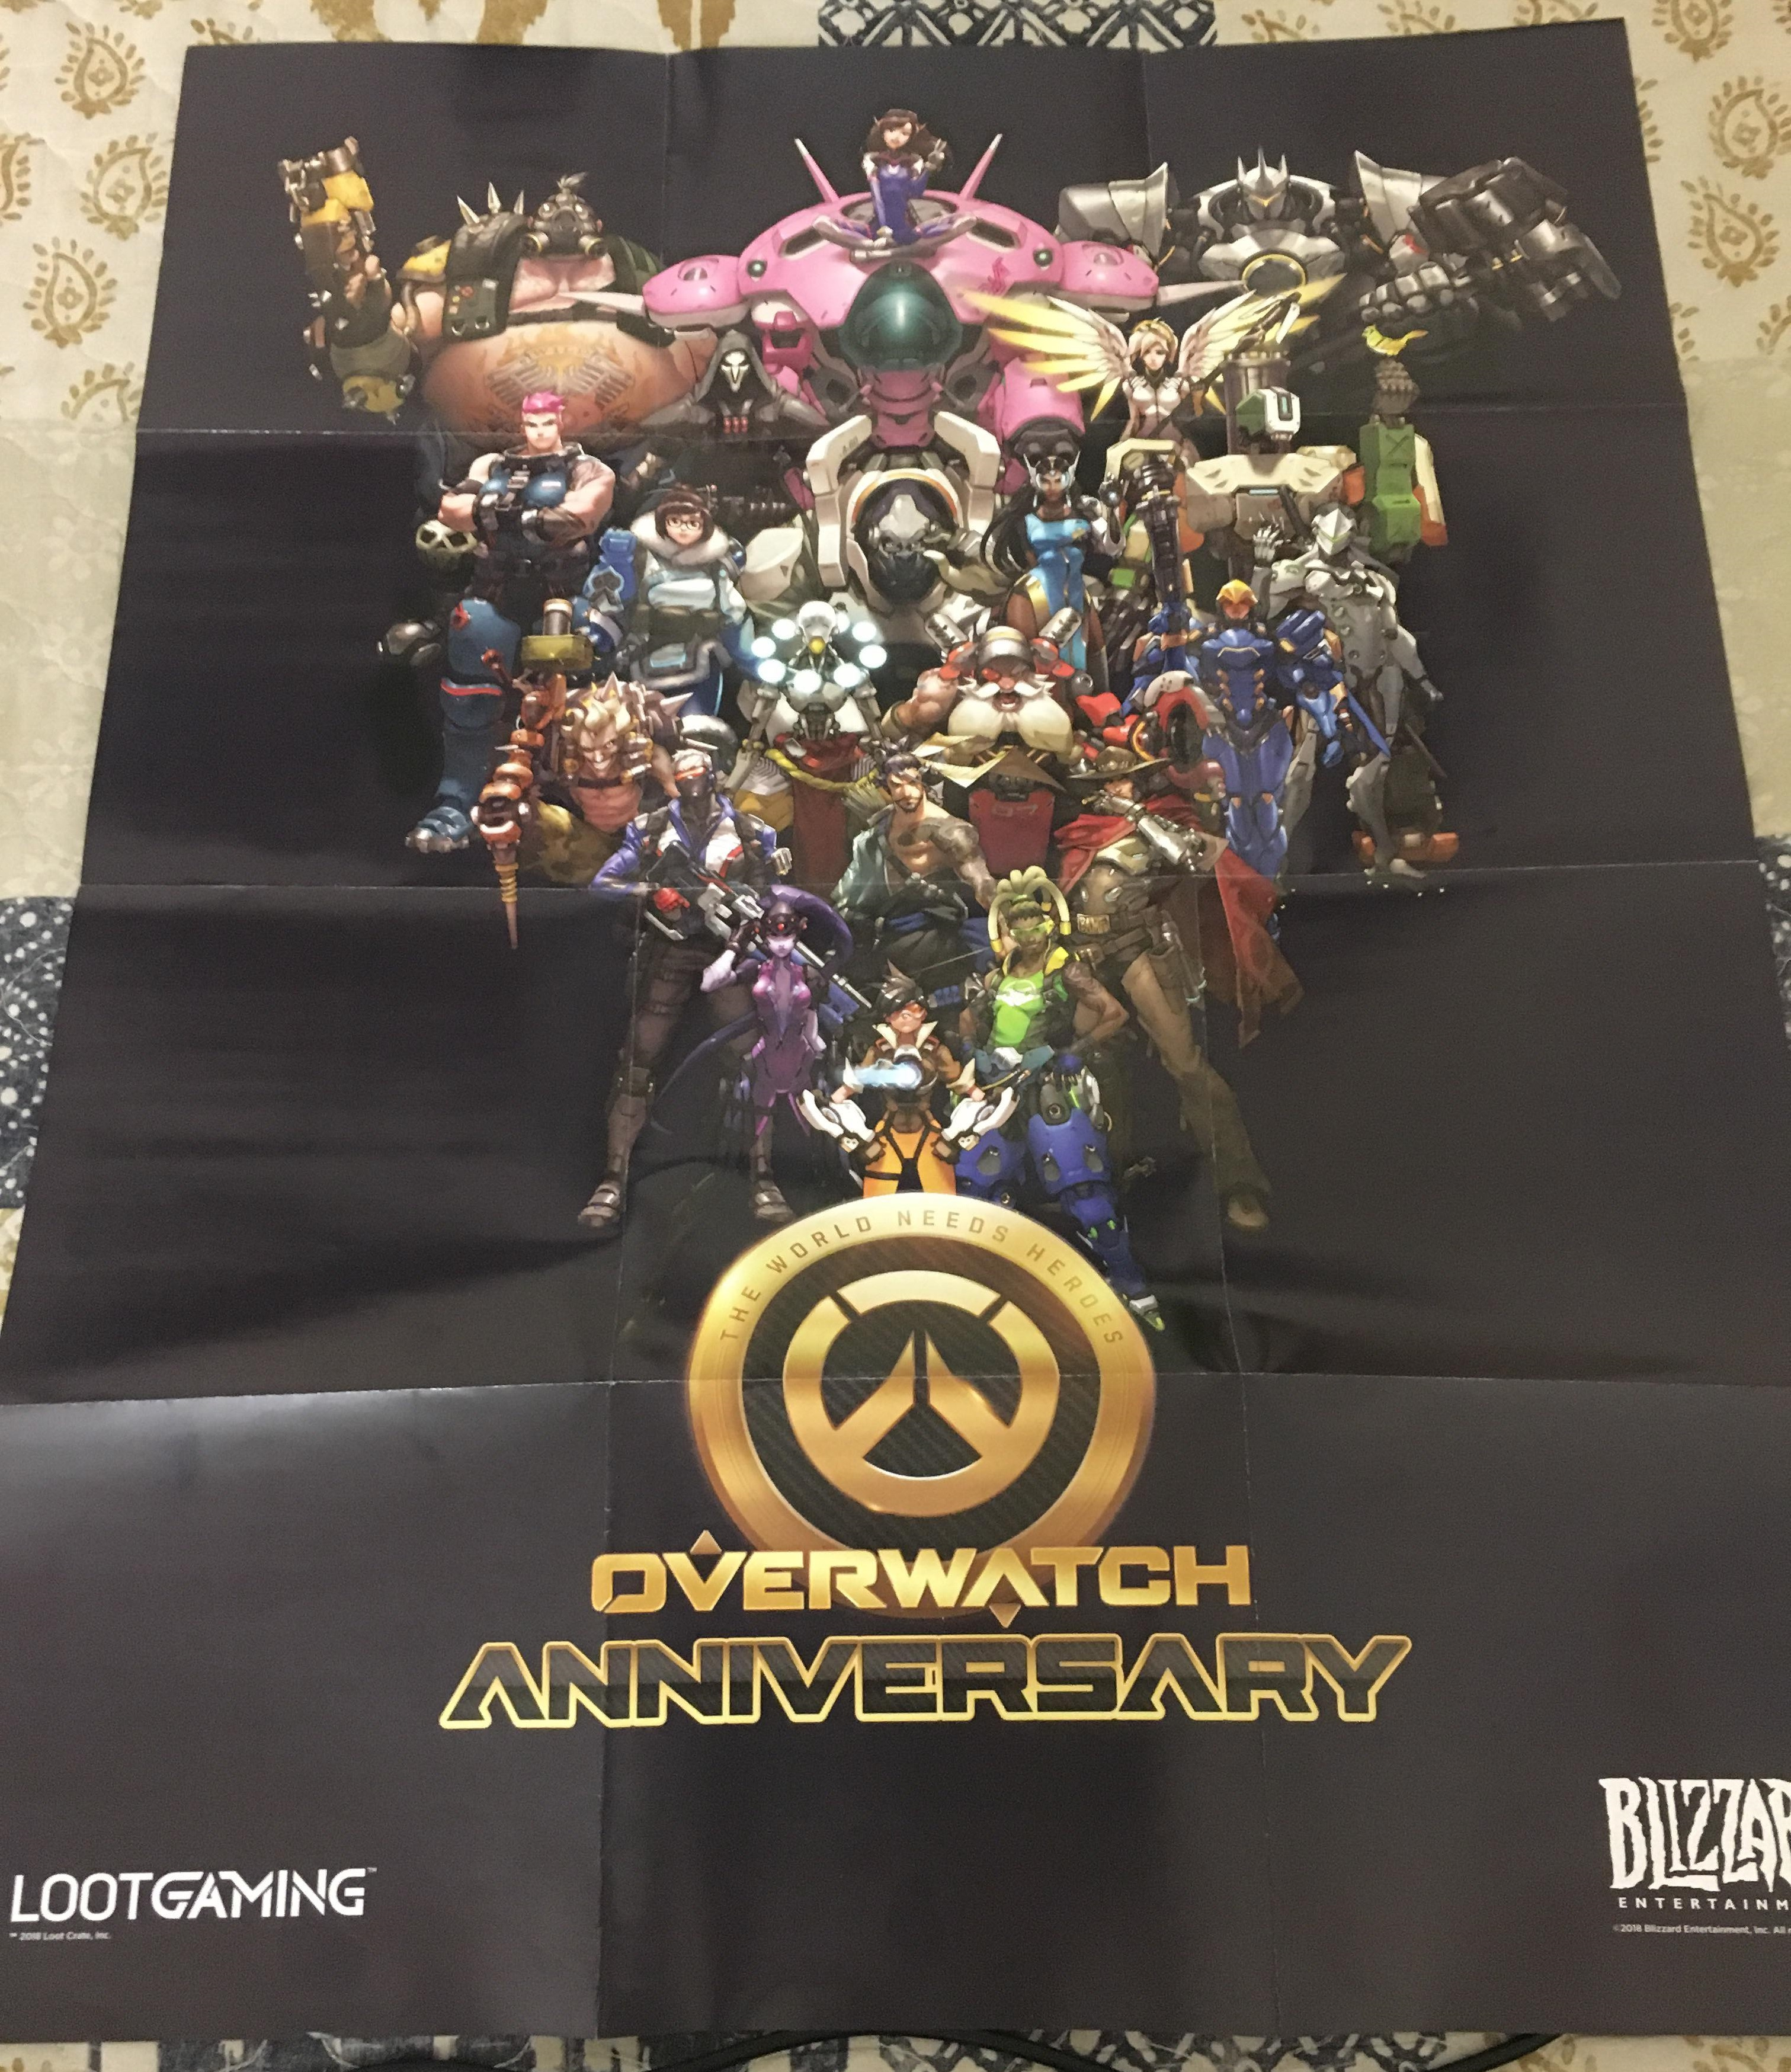 Overwatch Lootgaming poster Pew Pew